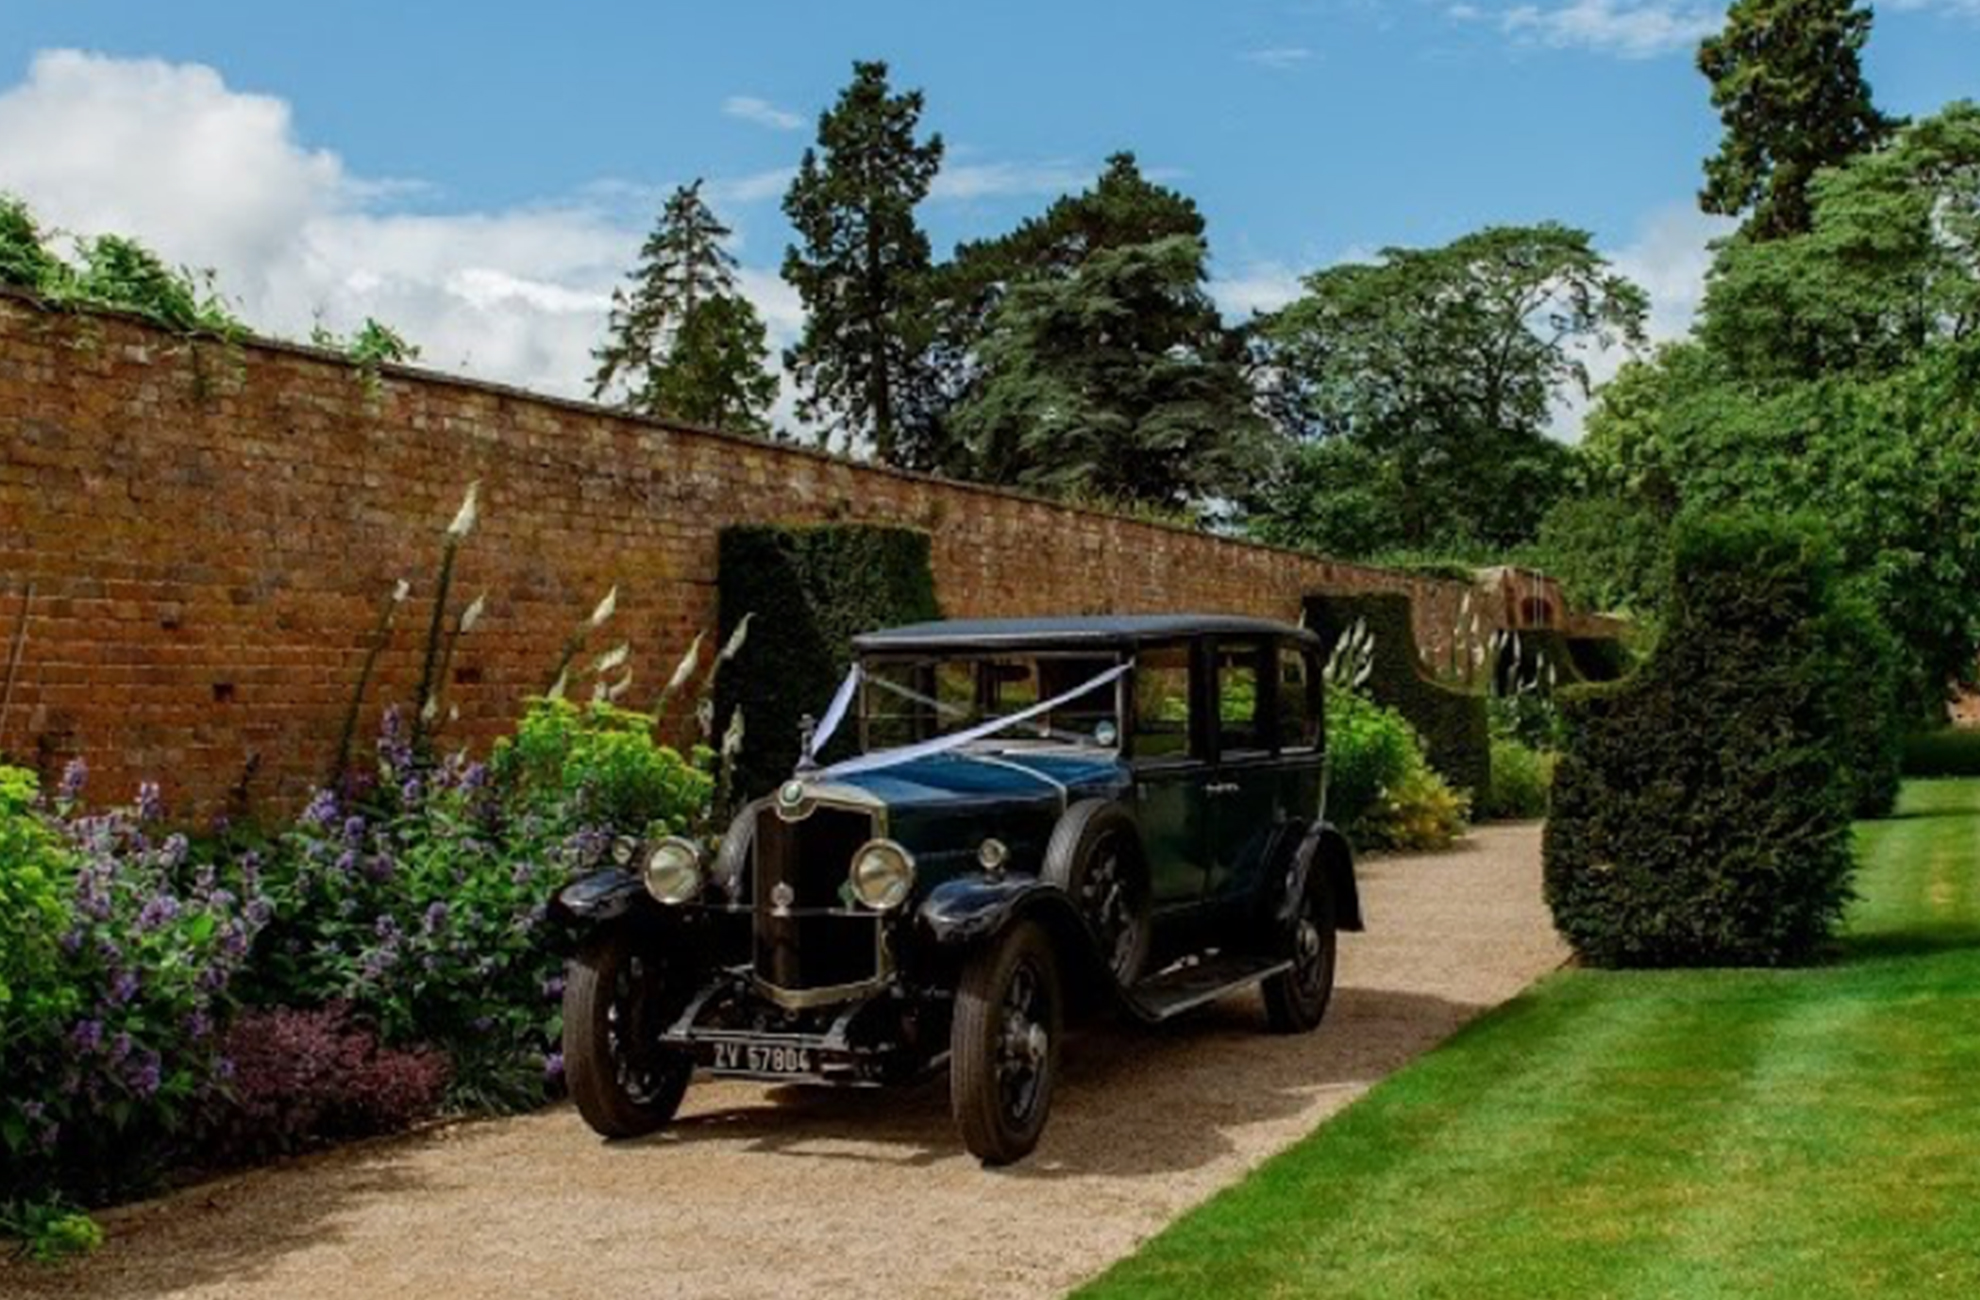 Vintage Crossley wedding transport for your wedding day at Combermere Abbey